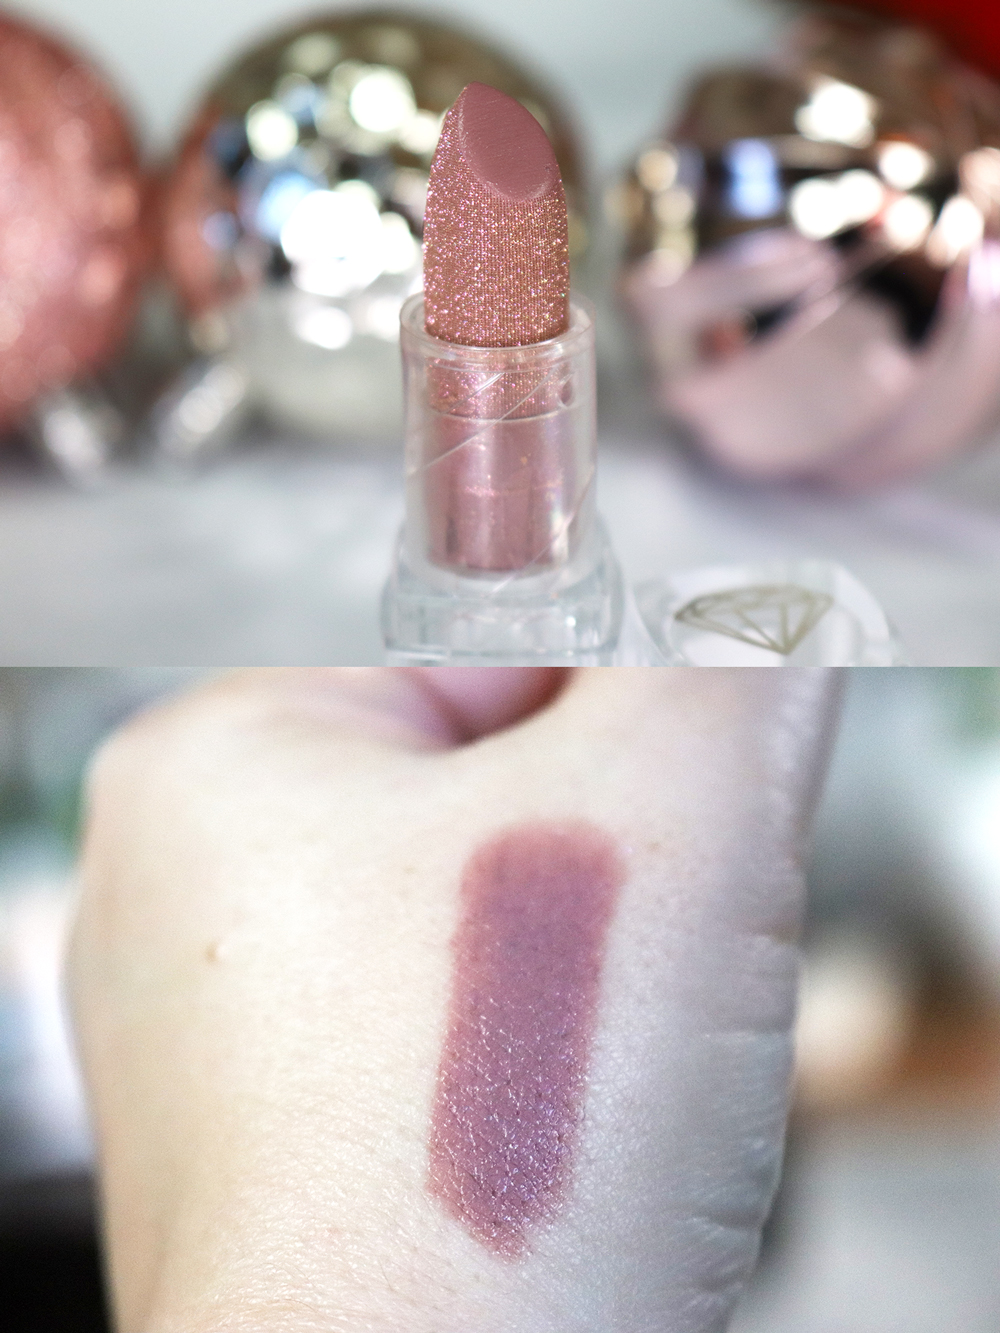 Cruelty Free Holiday Gift Guide 2020 - NYX Diamonds and Ice Please Shout Loud lipstick in Royal Clapback